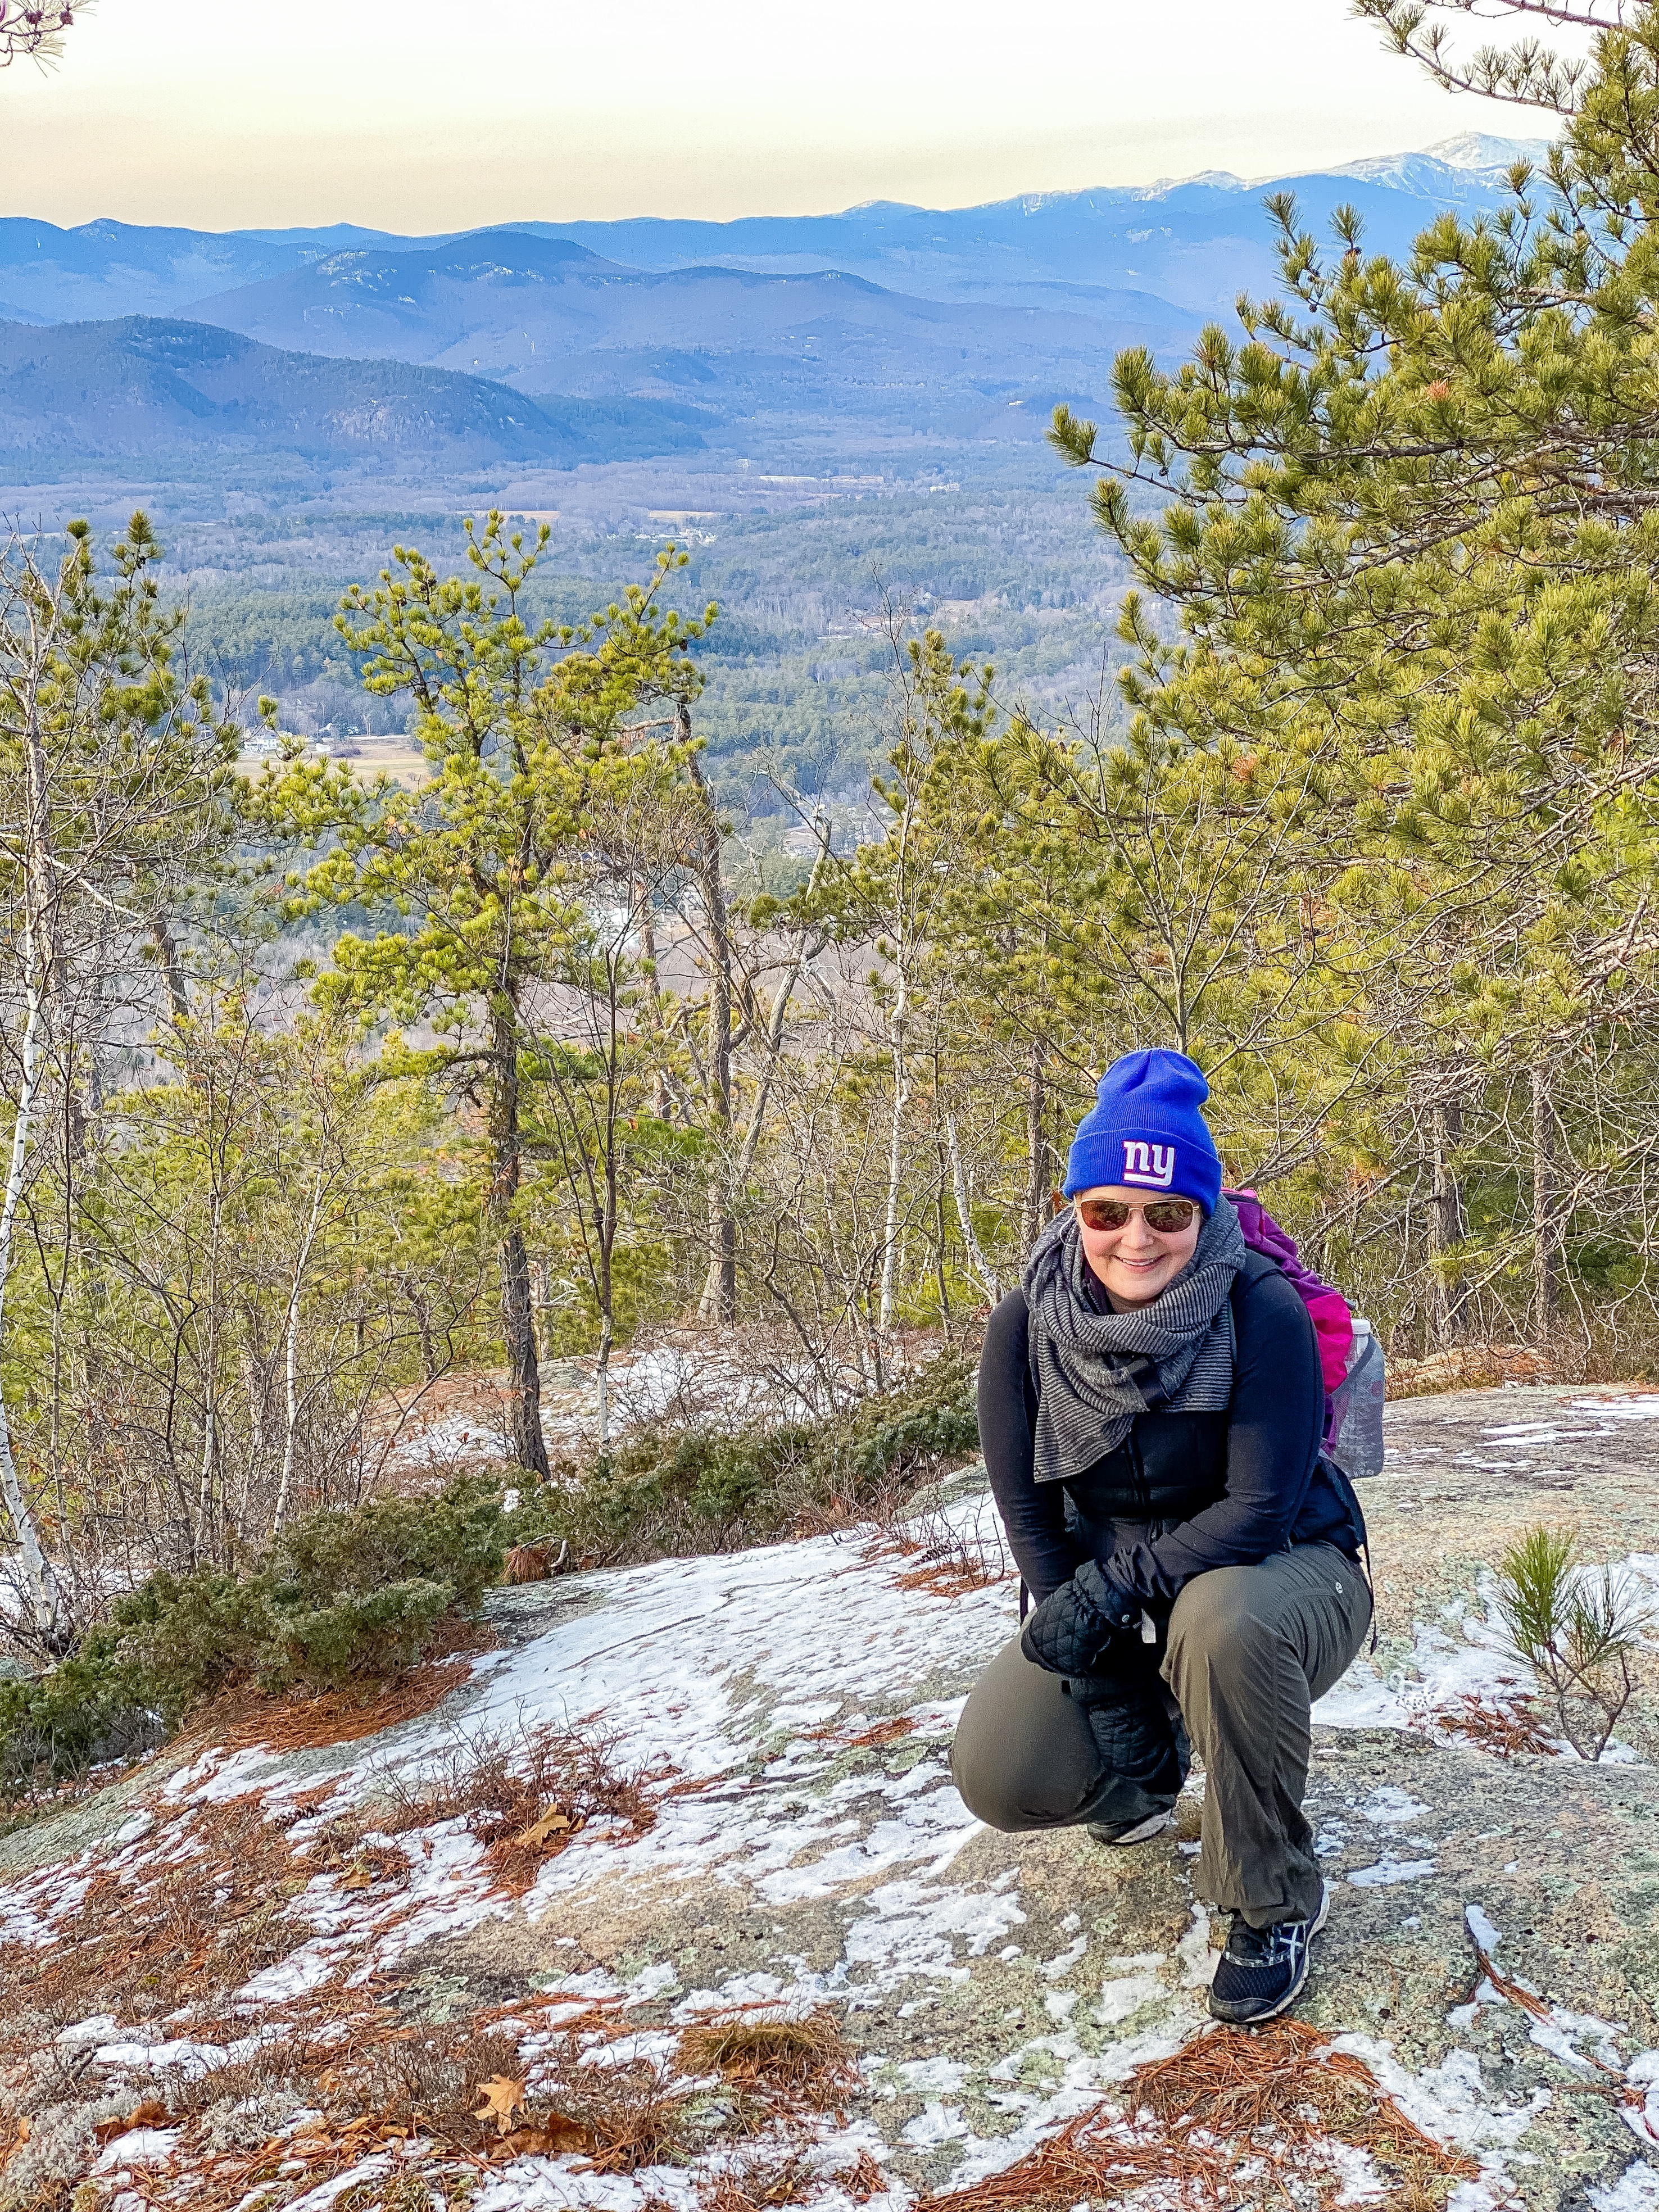 2021 New Year's Hike: Peaked Mountain